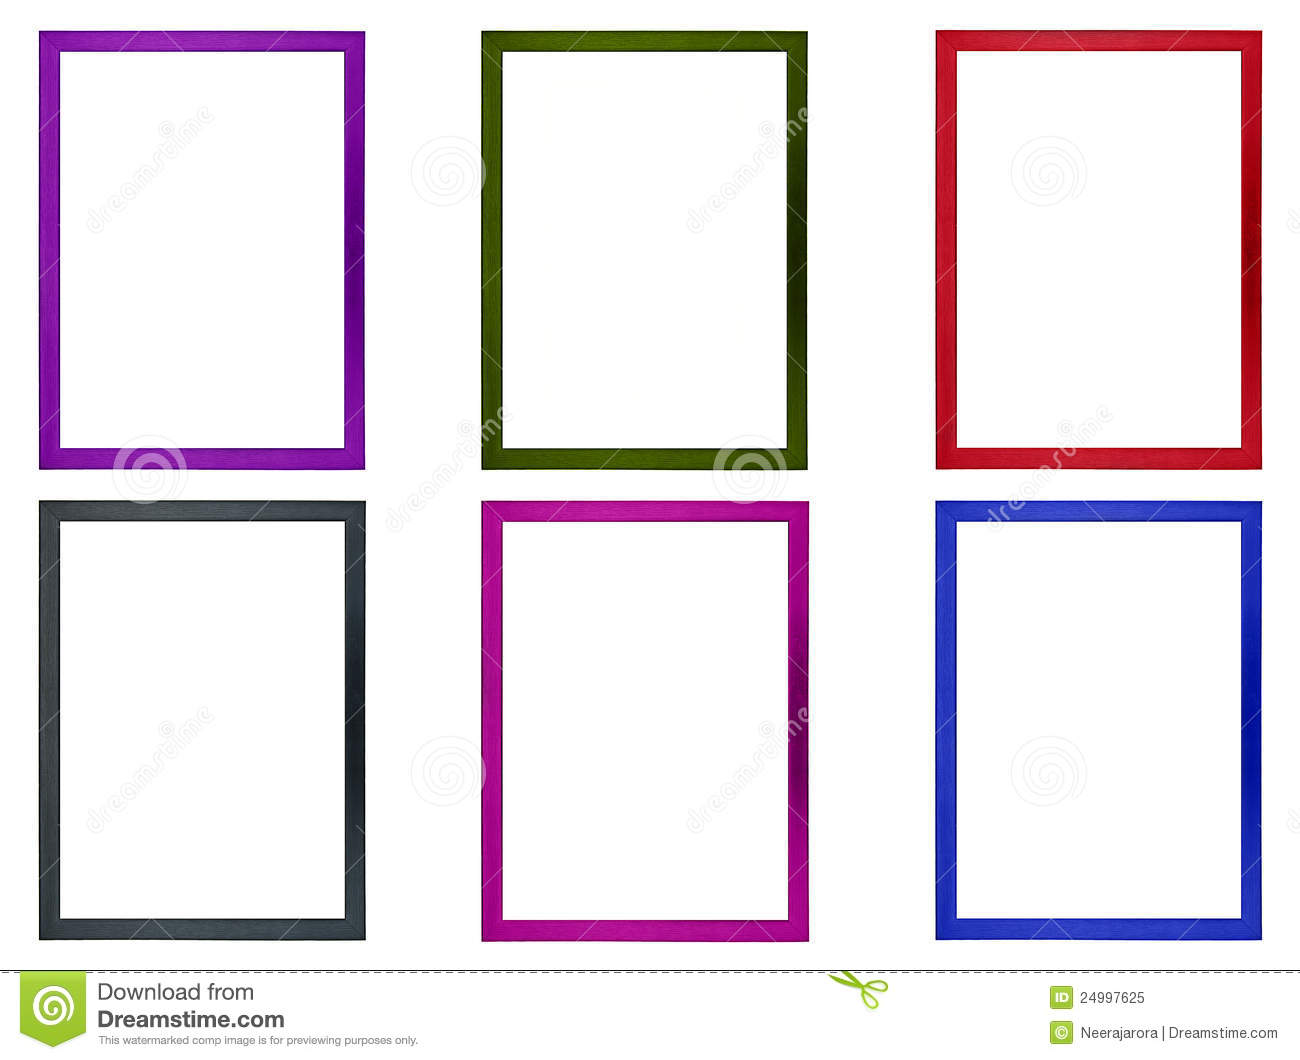 Colored Photo Frames stock image. Image of isolated, color - 24997625